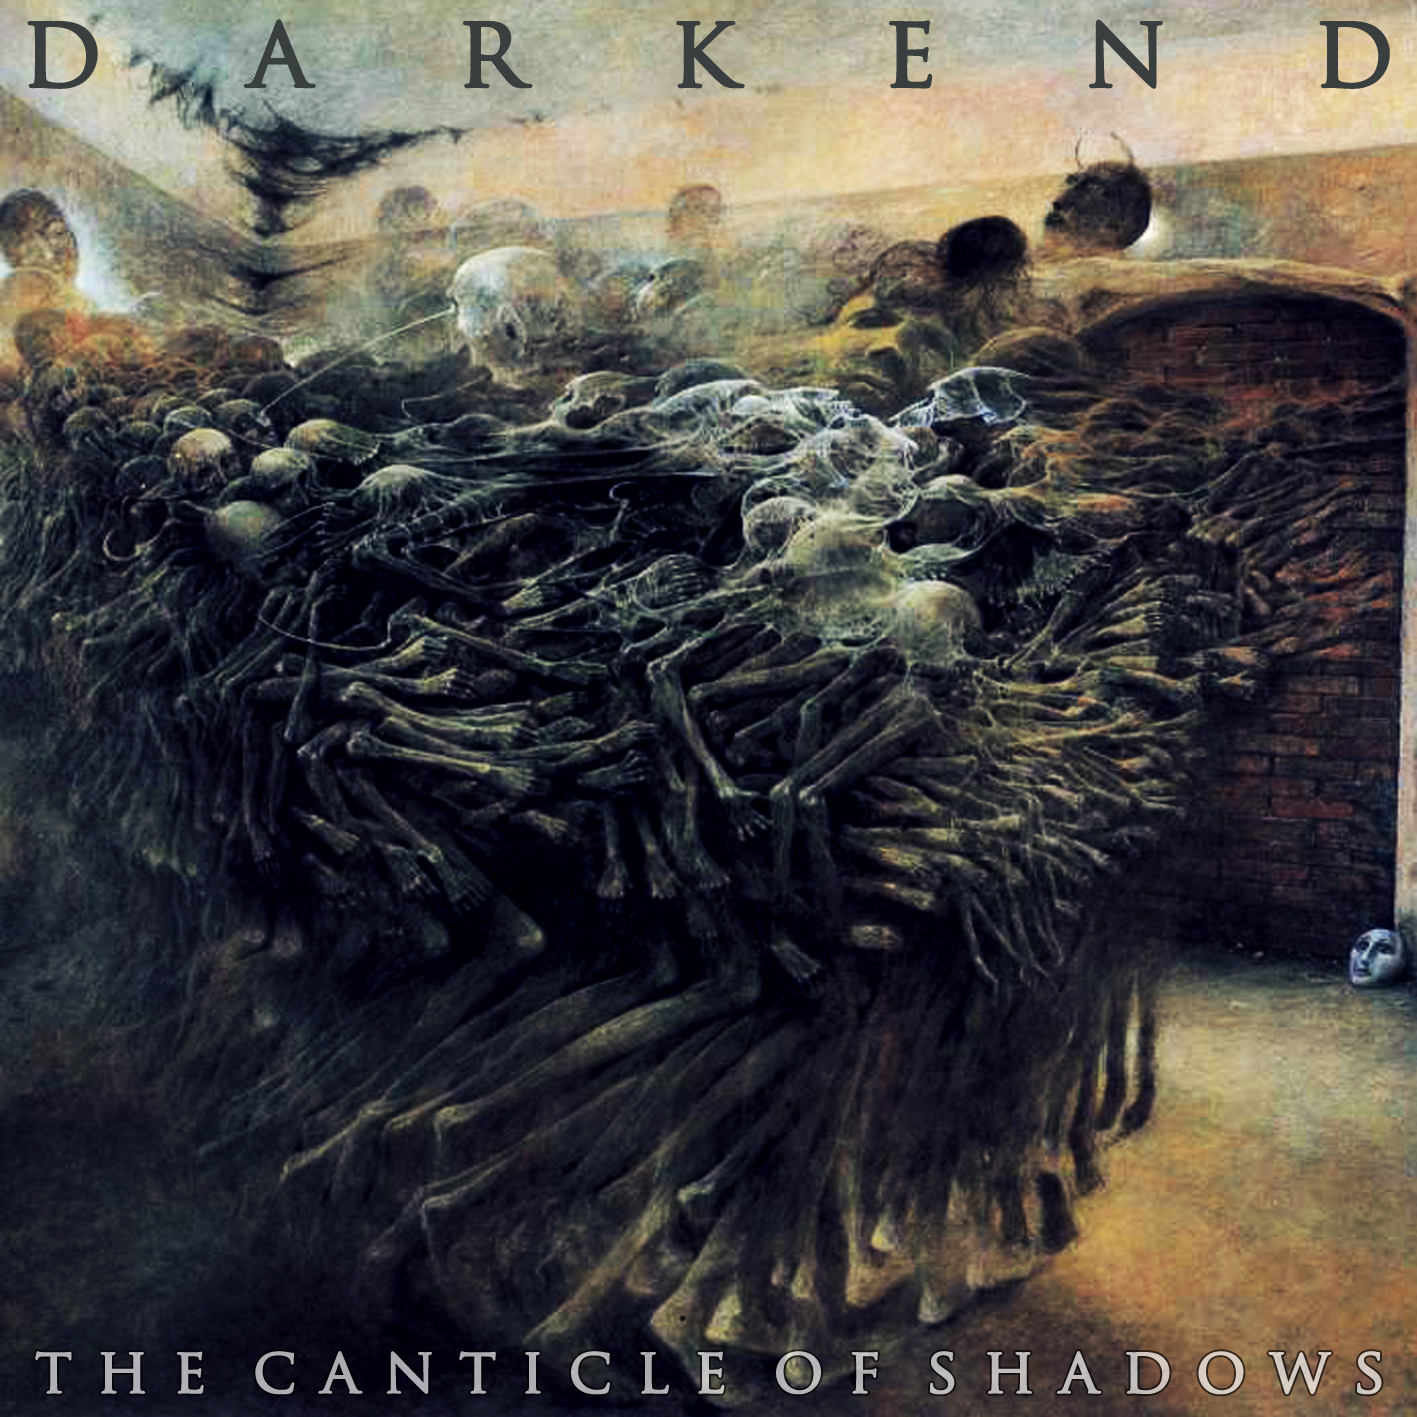 Darkend-The Canticle of Shadows 01